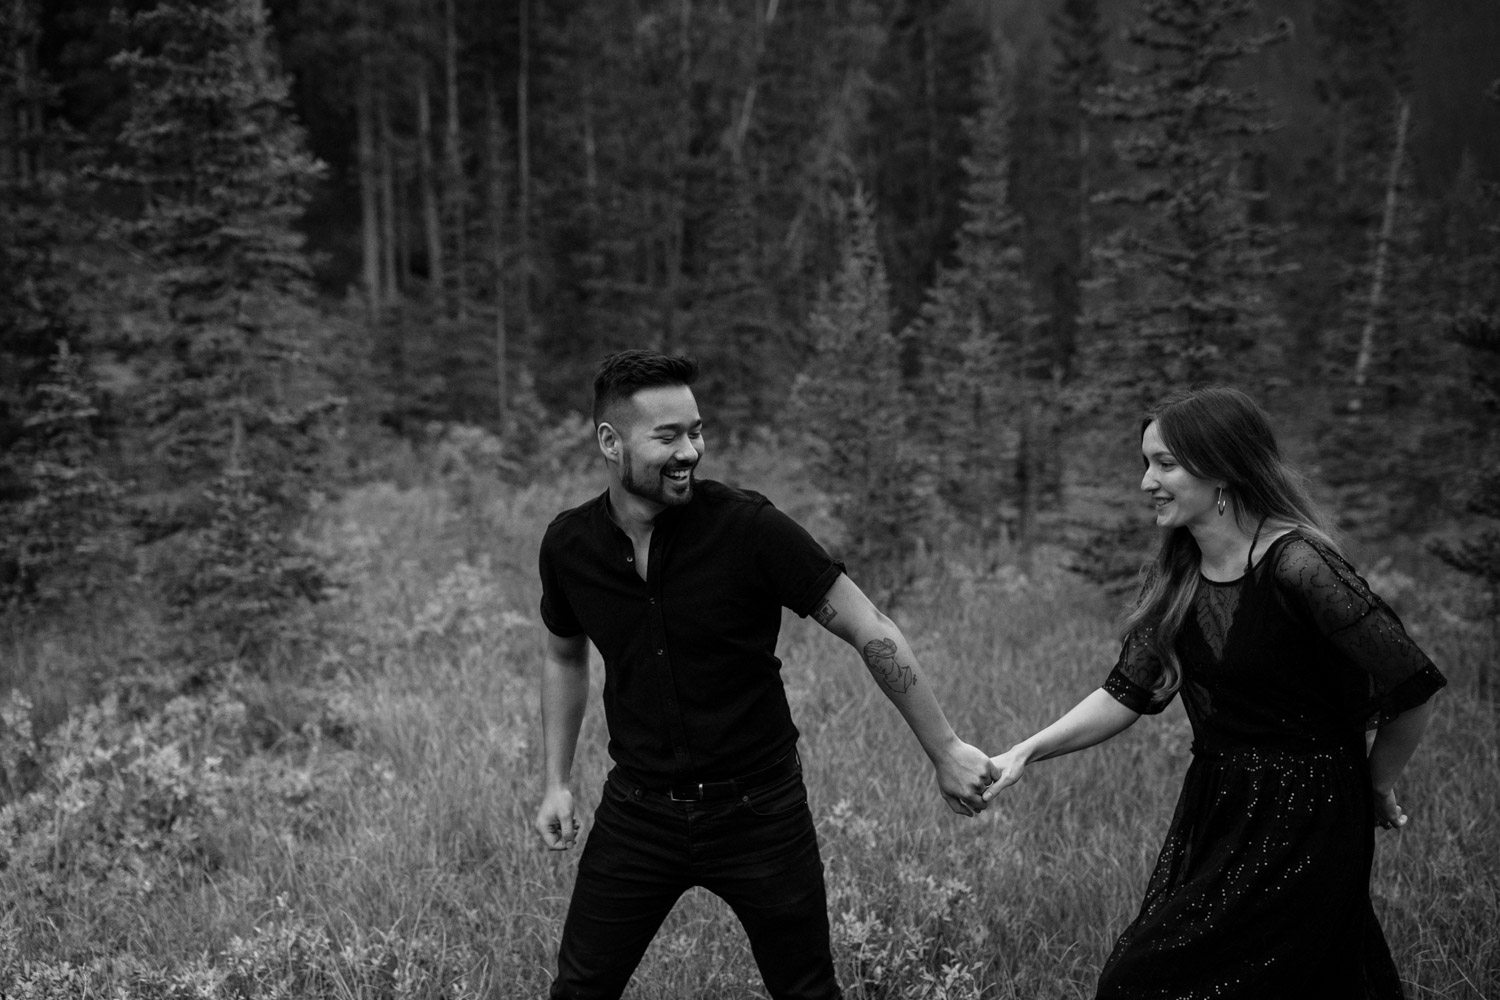 Engaged Hipster Alternative Couple Walking Laughing In BC Forest